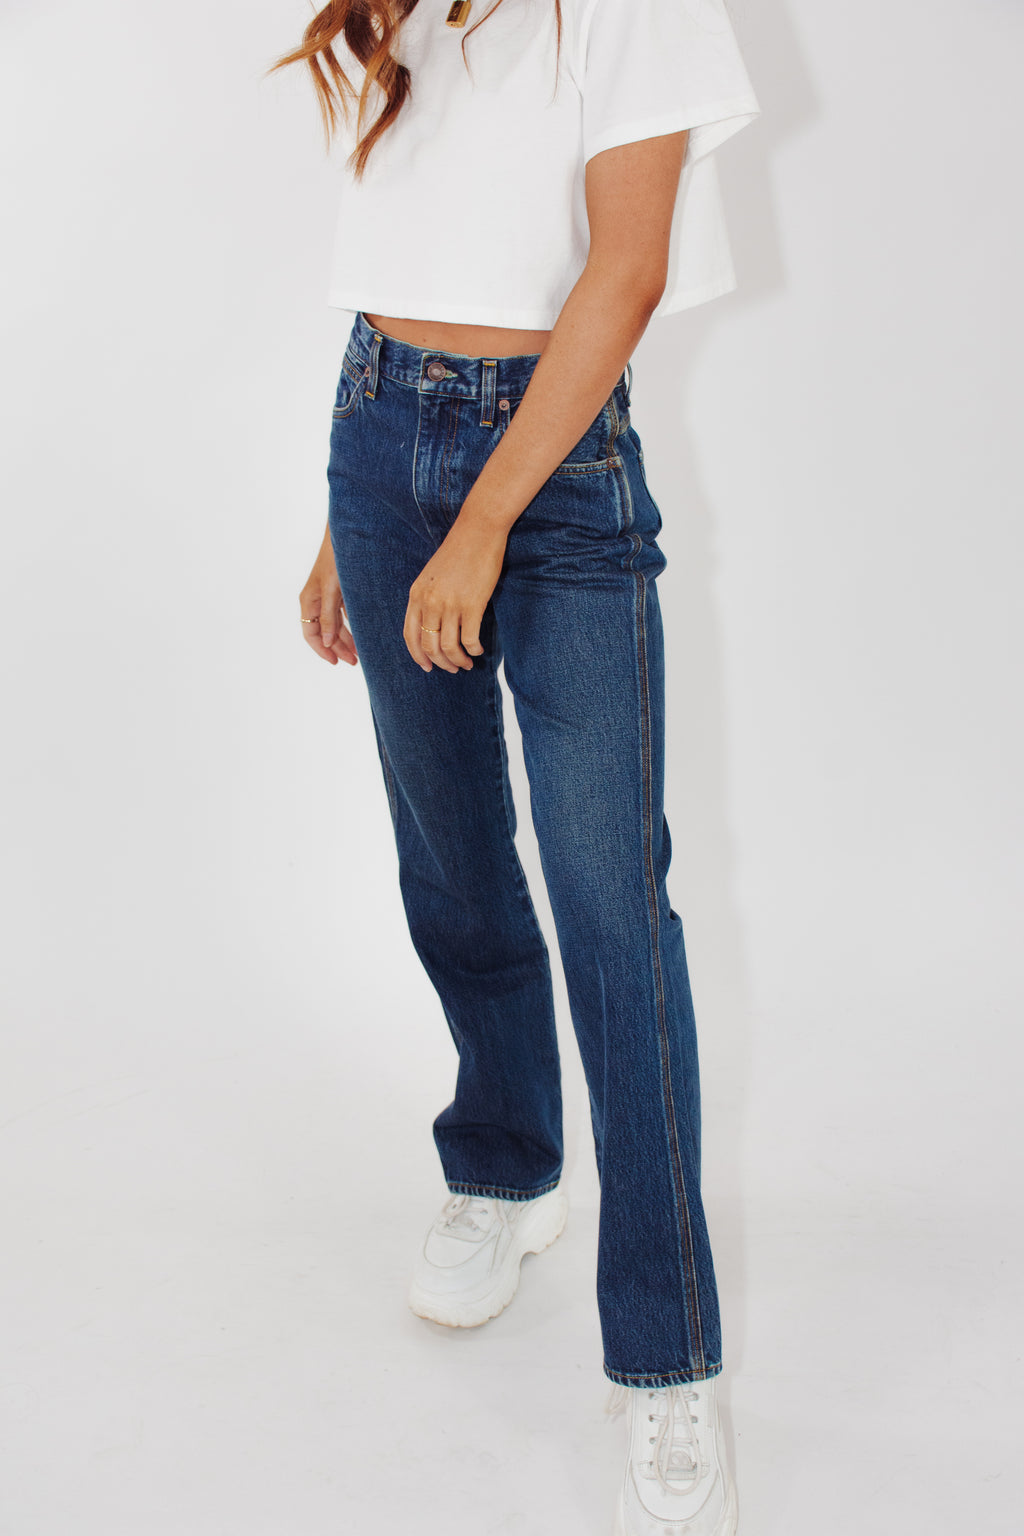 AGOLDE Jeans || Size 27